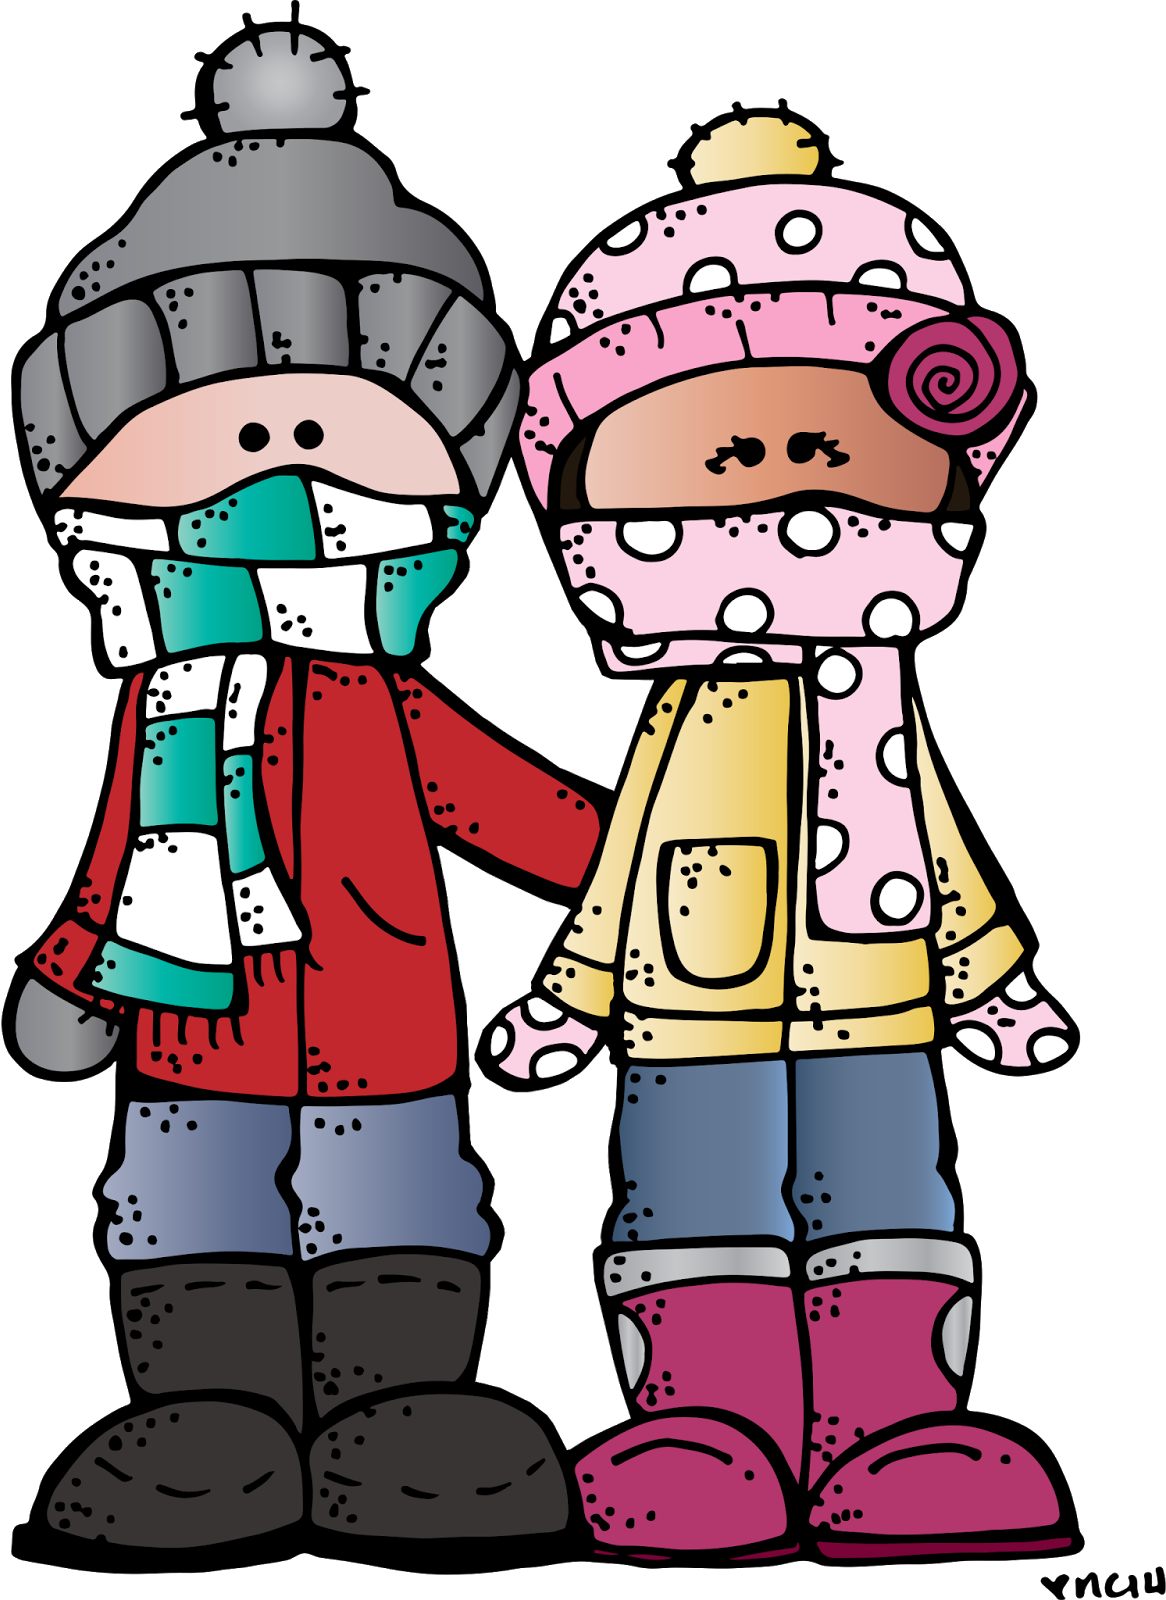 Melonheadz happy winter nikki. Mittens clipart cold weather clothes